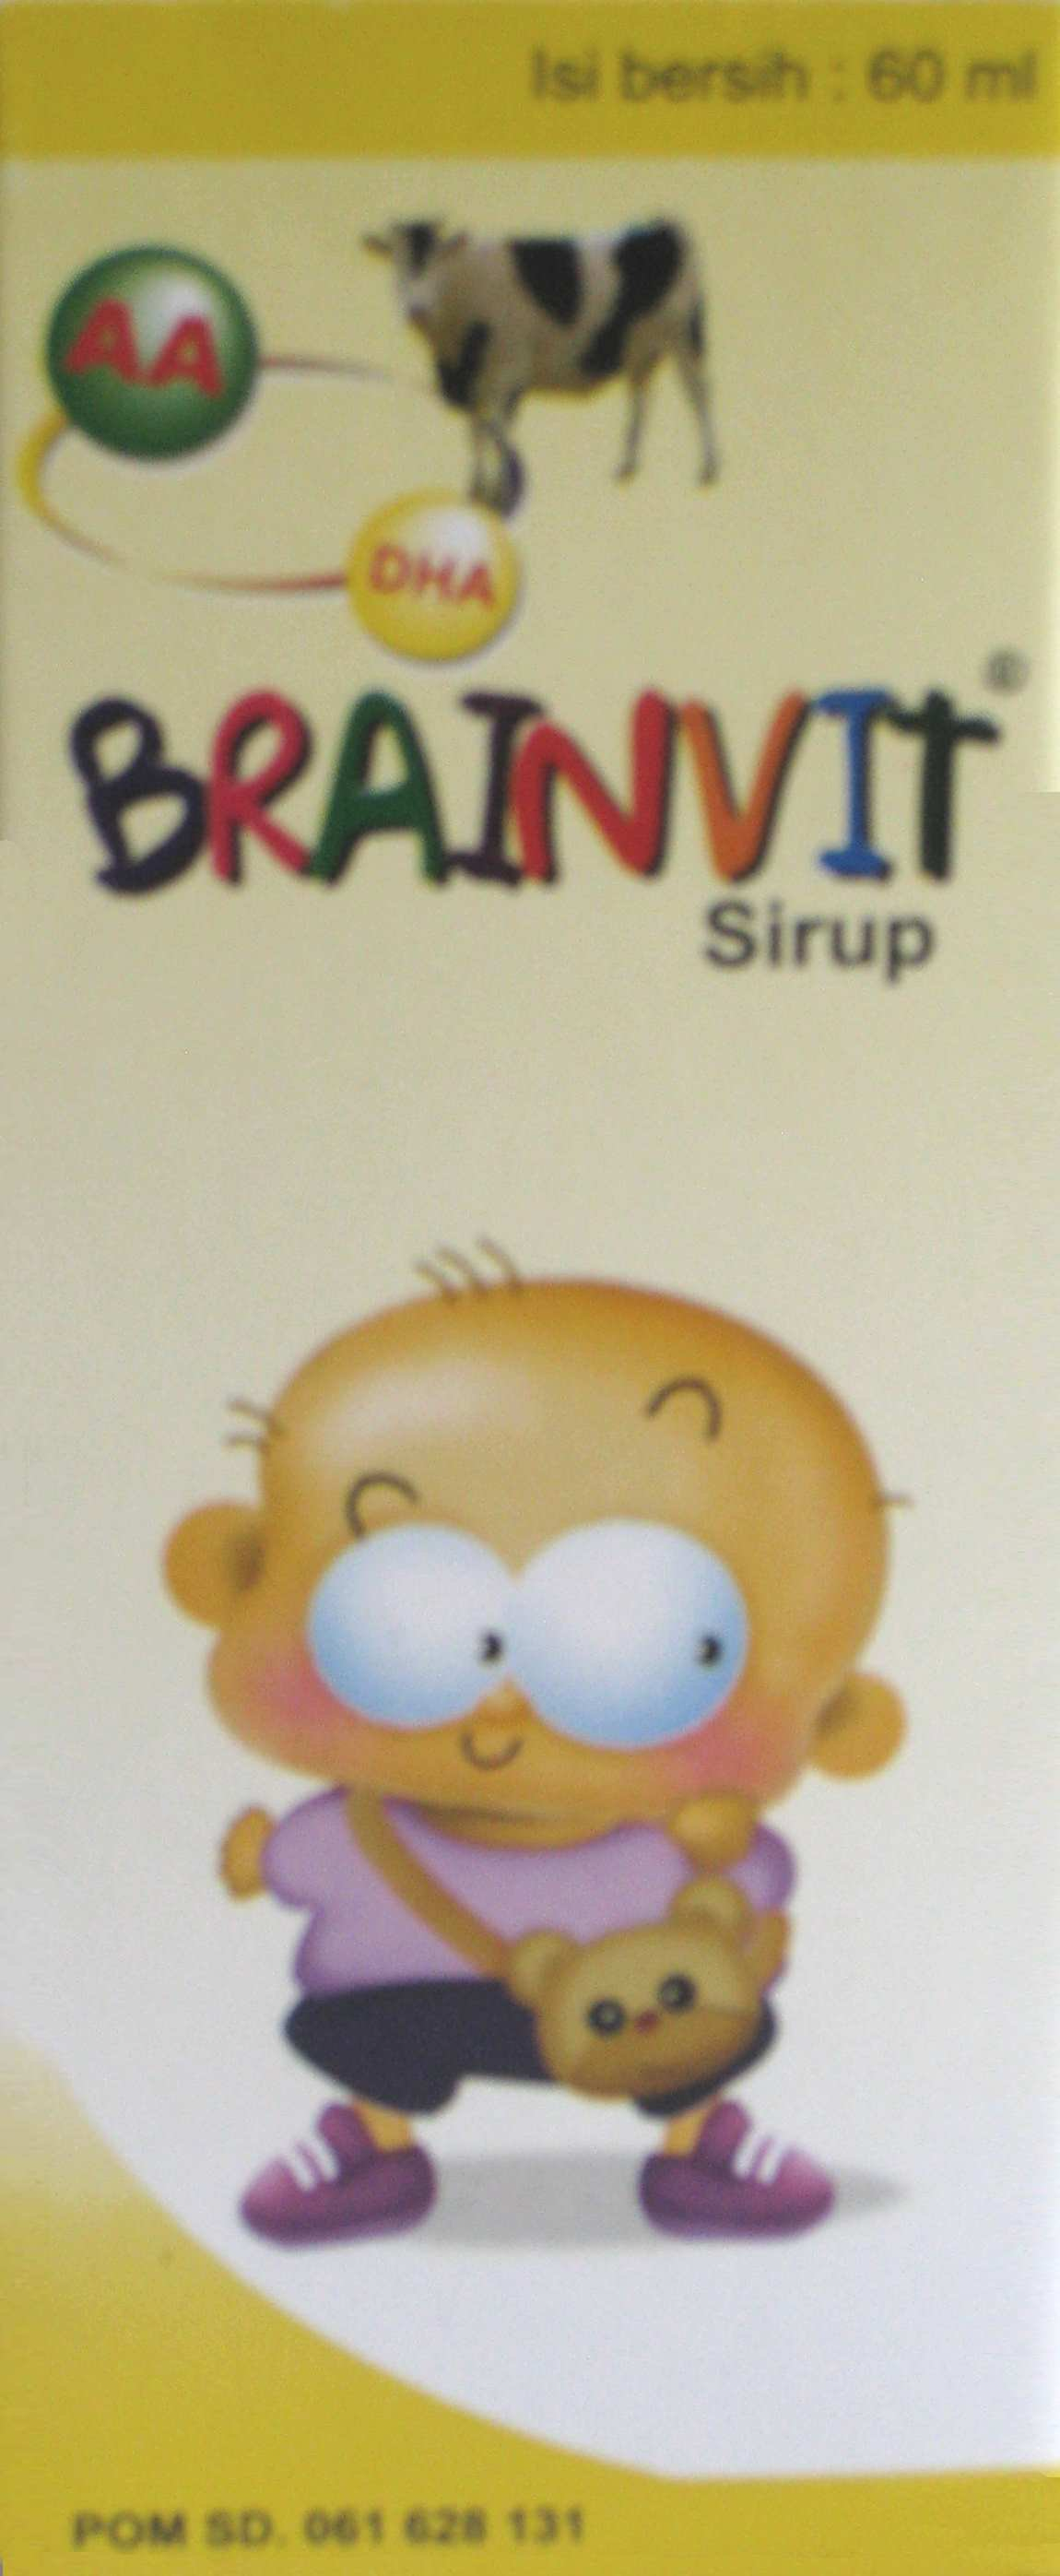 BRAINVIT SIRUP 60 ML